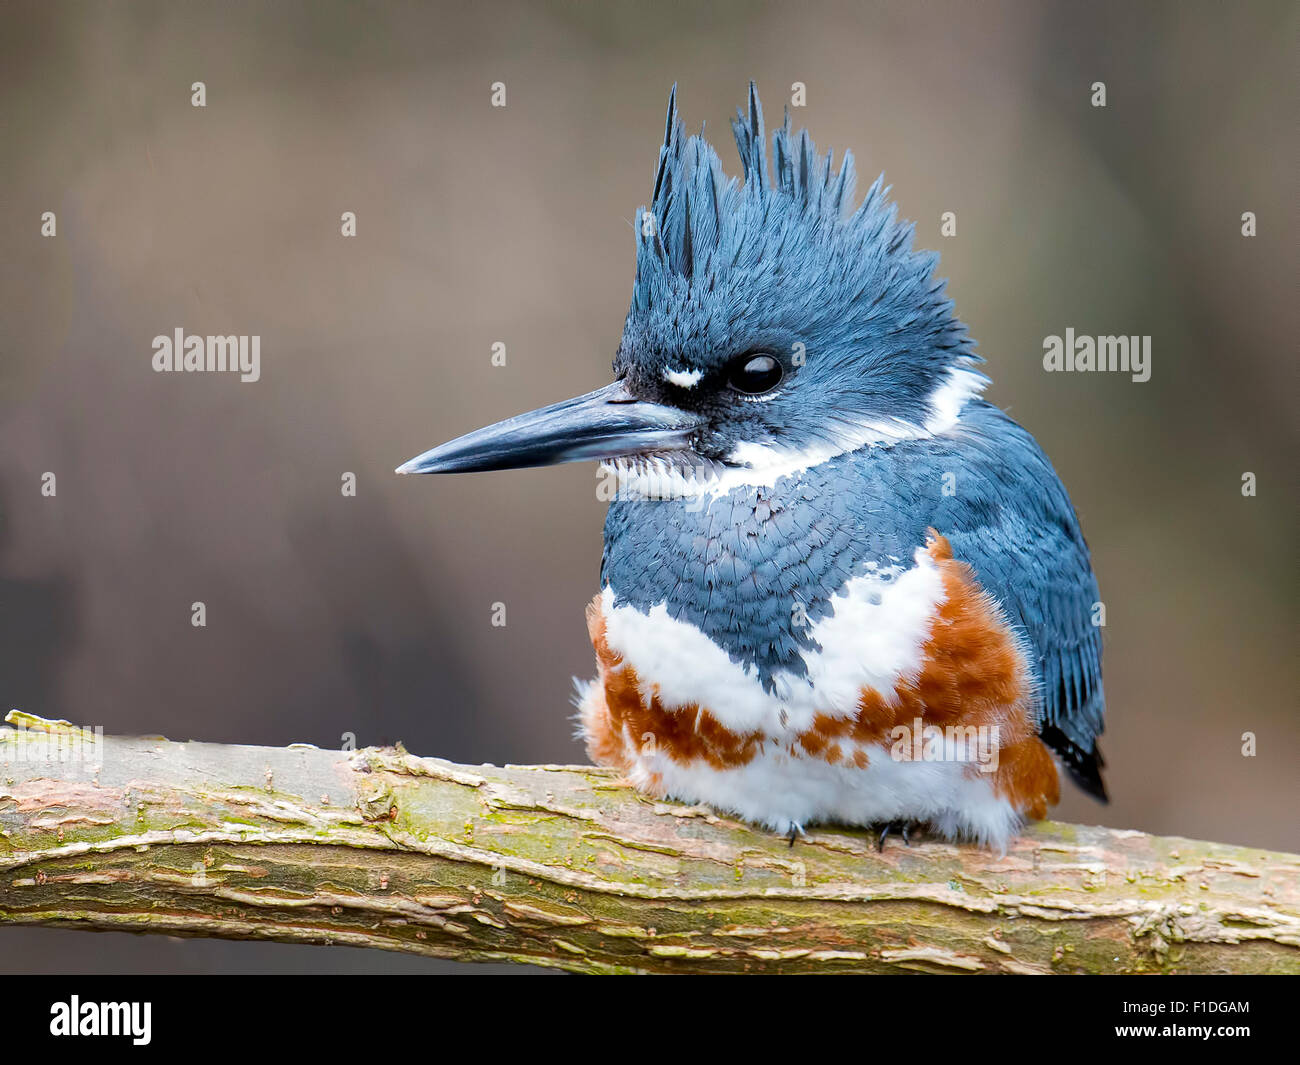 Female Belted Kingfisher resting on branch. - Stock Image